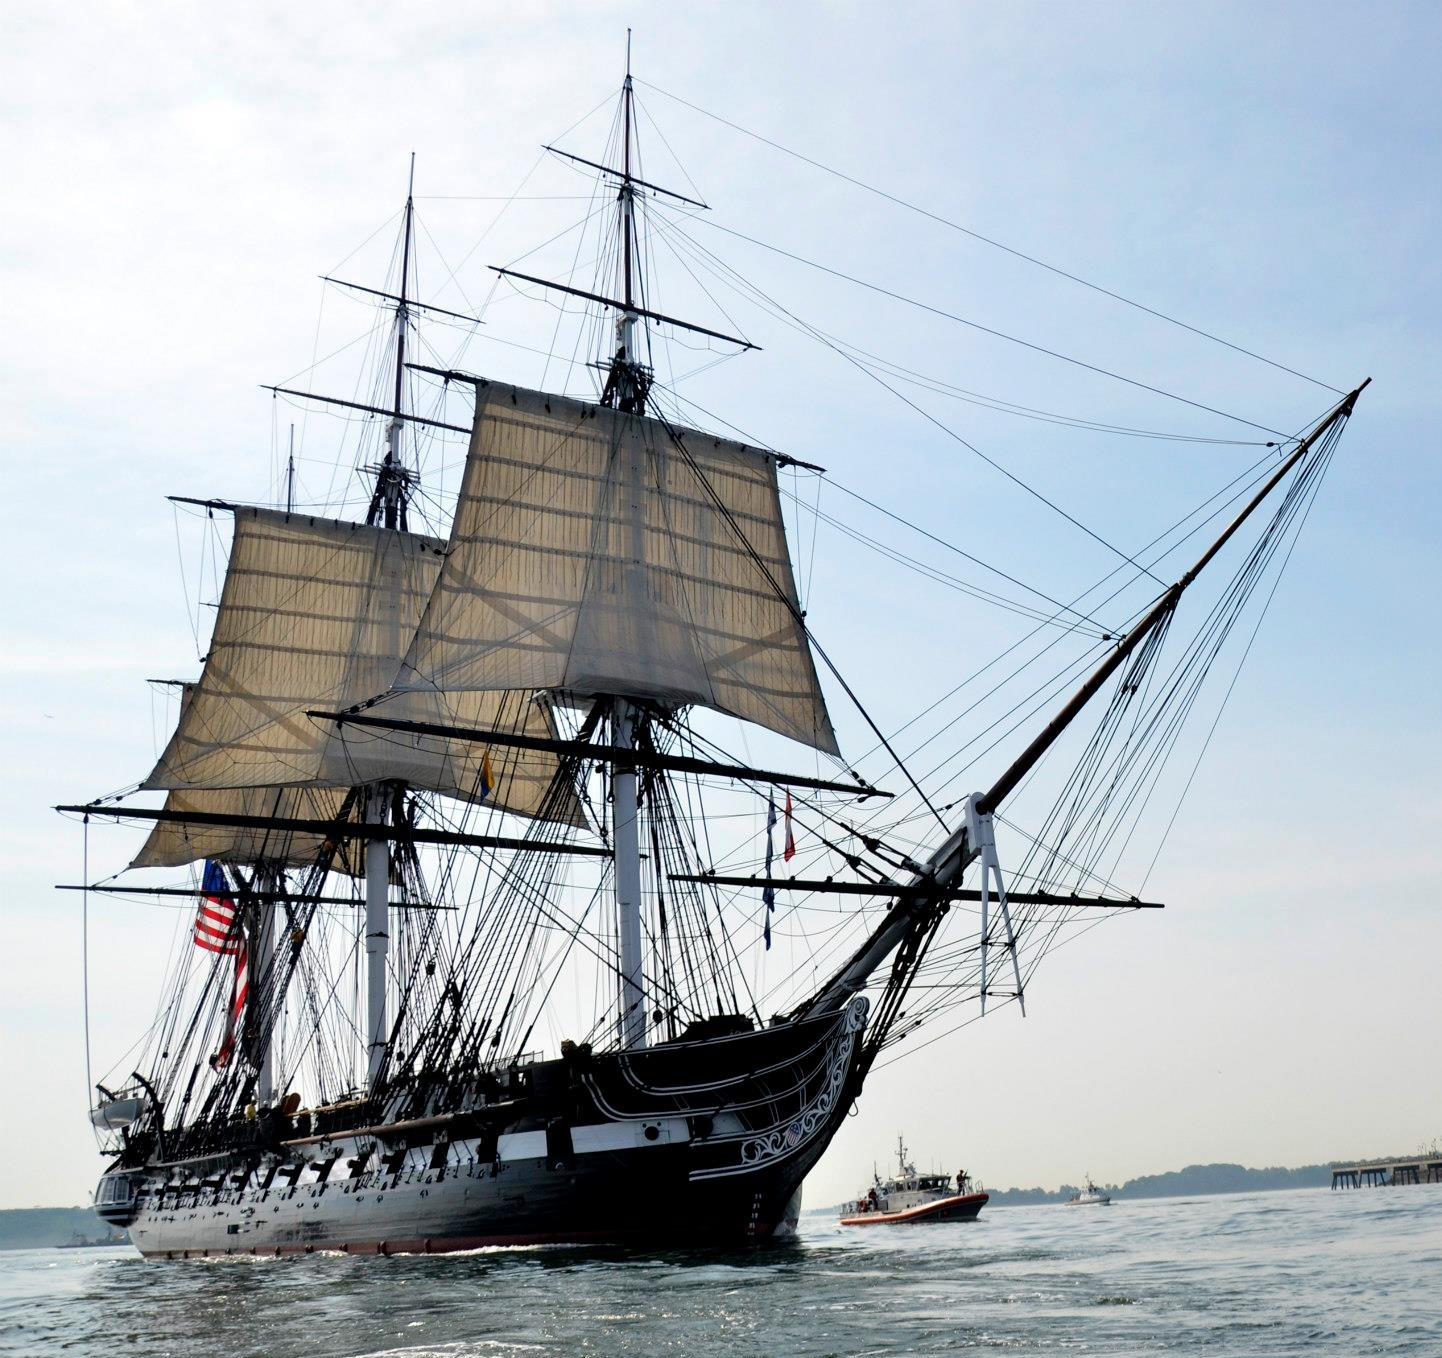 USS_Constitution_underway,_August_19,_20